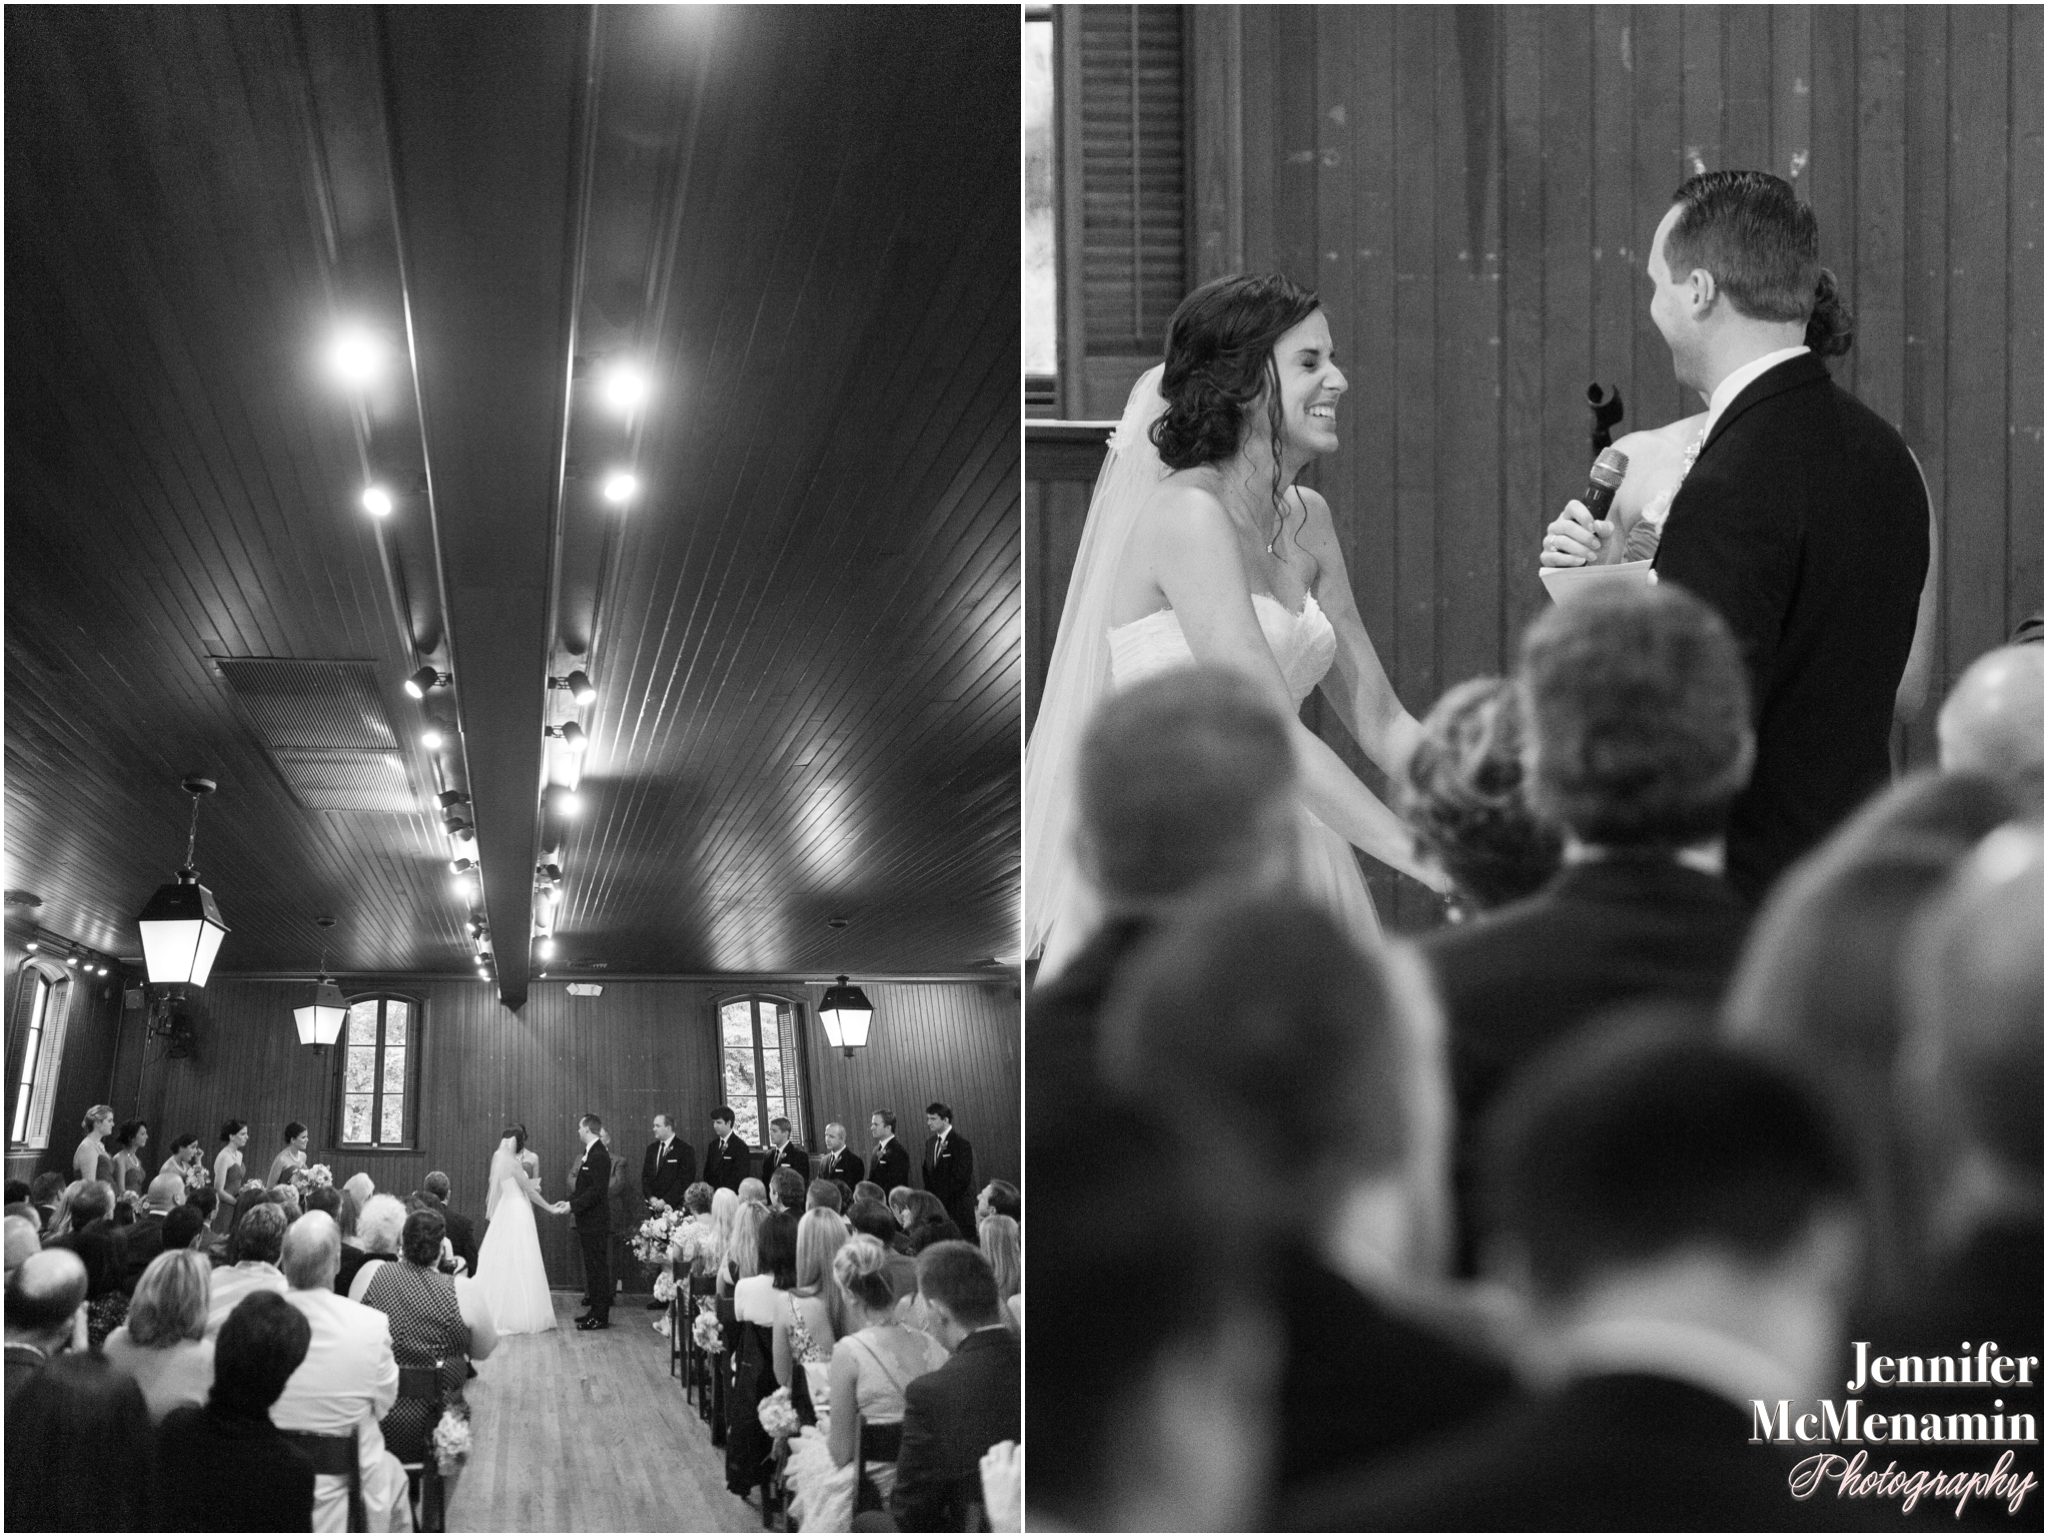 0072-BlumWilliams_02924-0536_JenniferMcMenaminPhotography_Evergreen-Museum-Carriage-House_Baltimore-wedding-photography_Baltimore-wedding-photographer